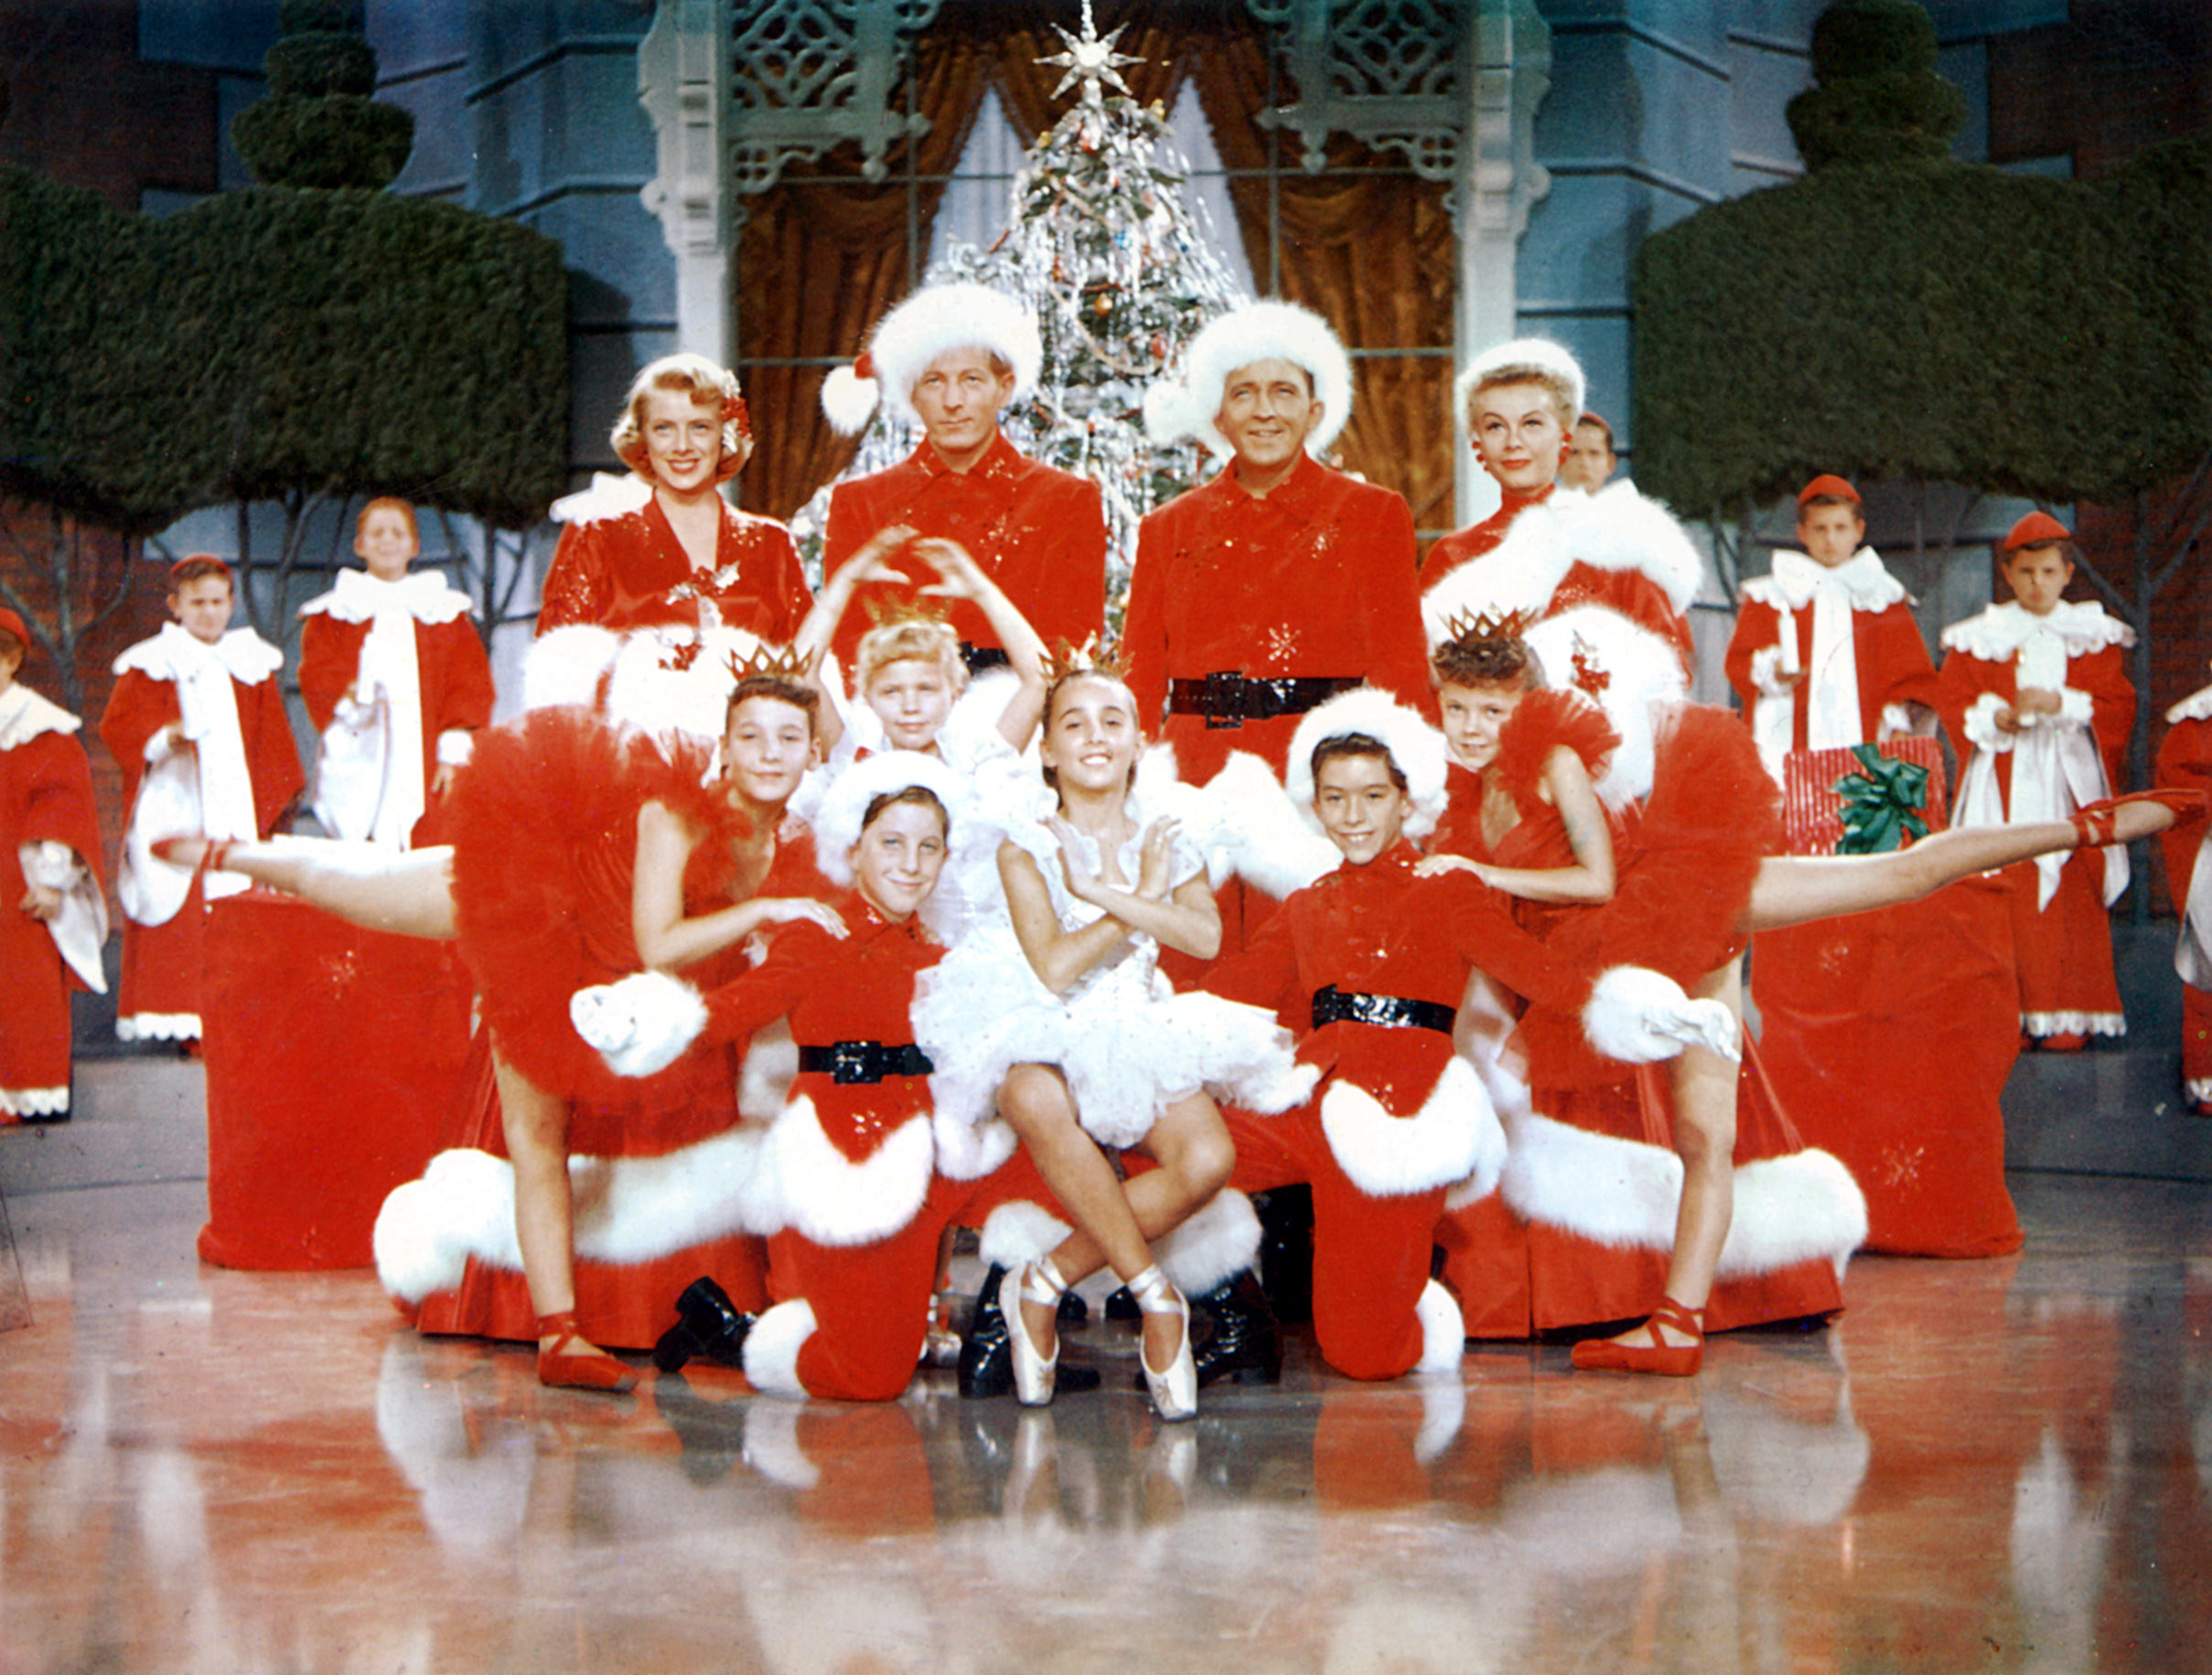 A still from Irving Berlin's White Christmas